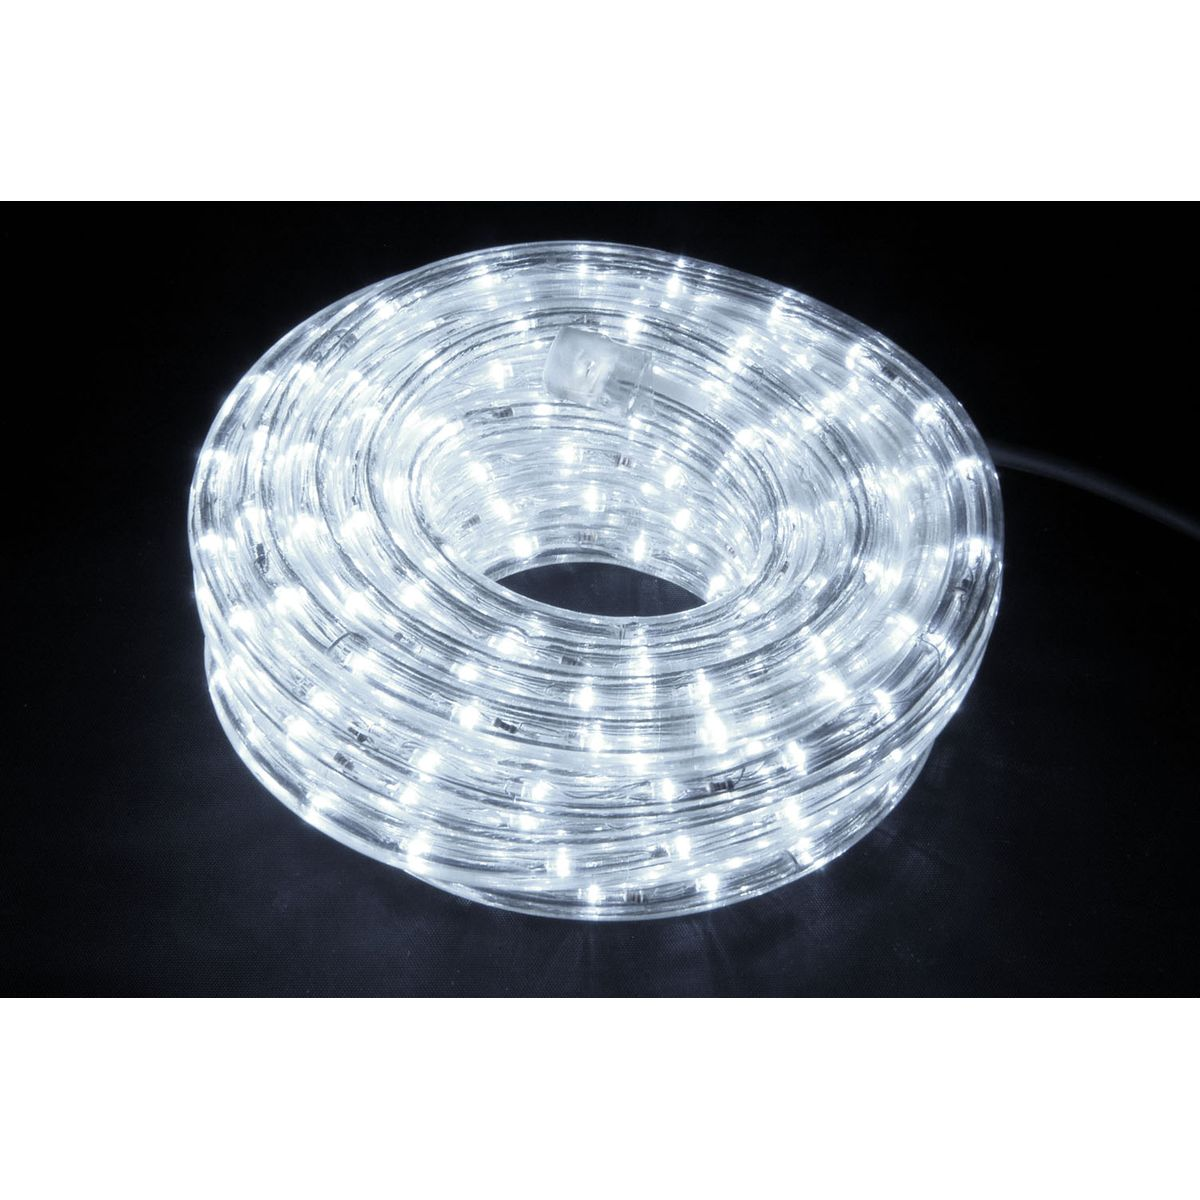 Best Rated Shop Lights: QTX IP44 Rated LED Rope Light - 50m Reel - White